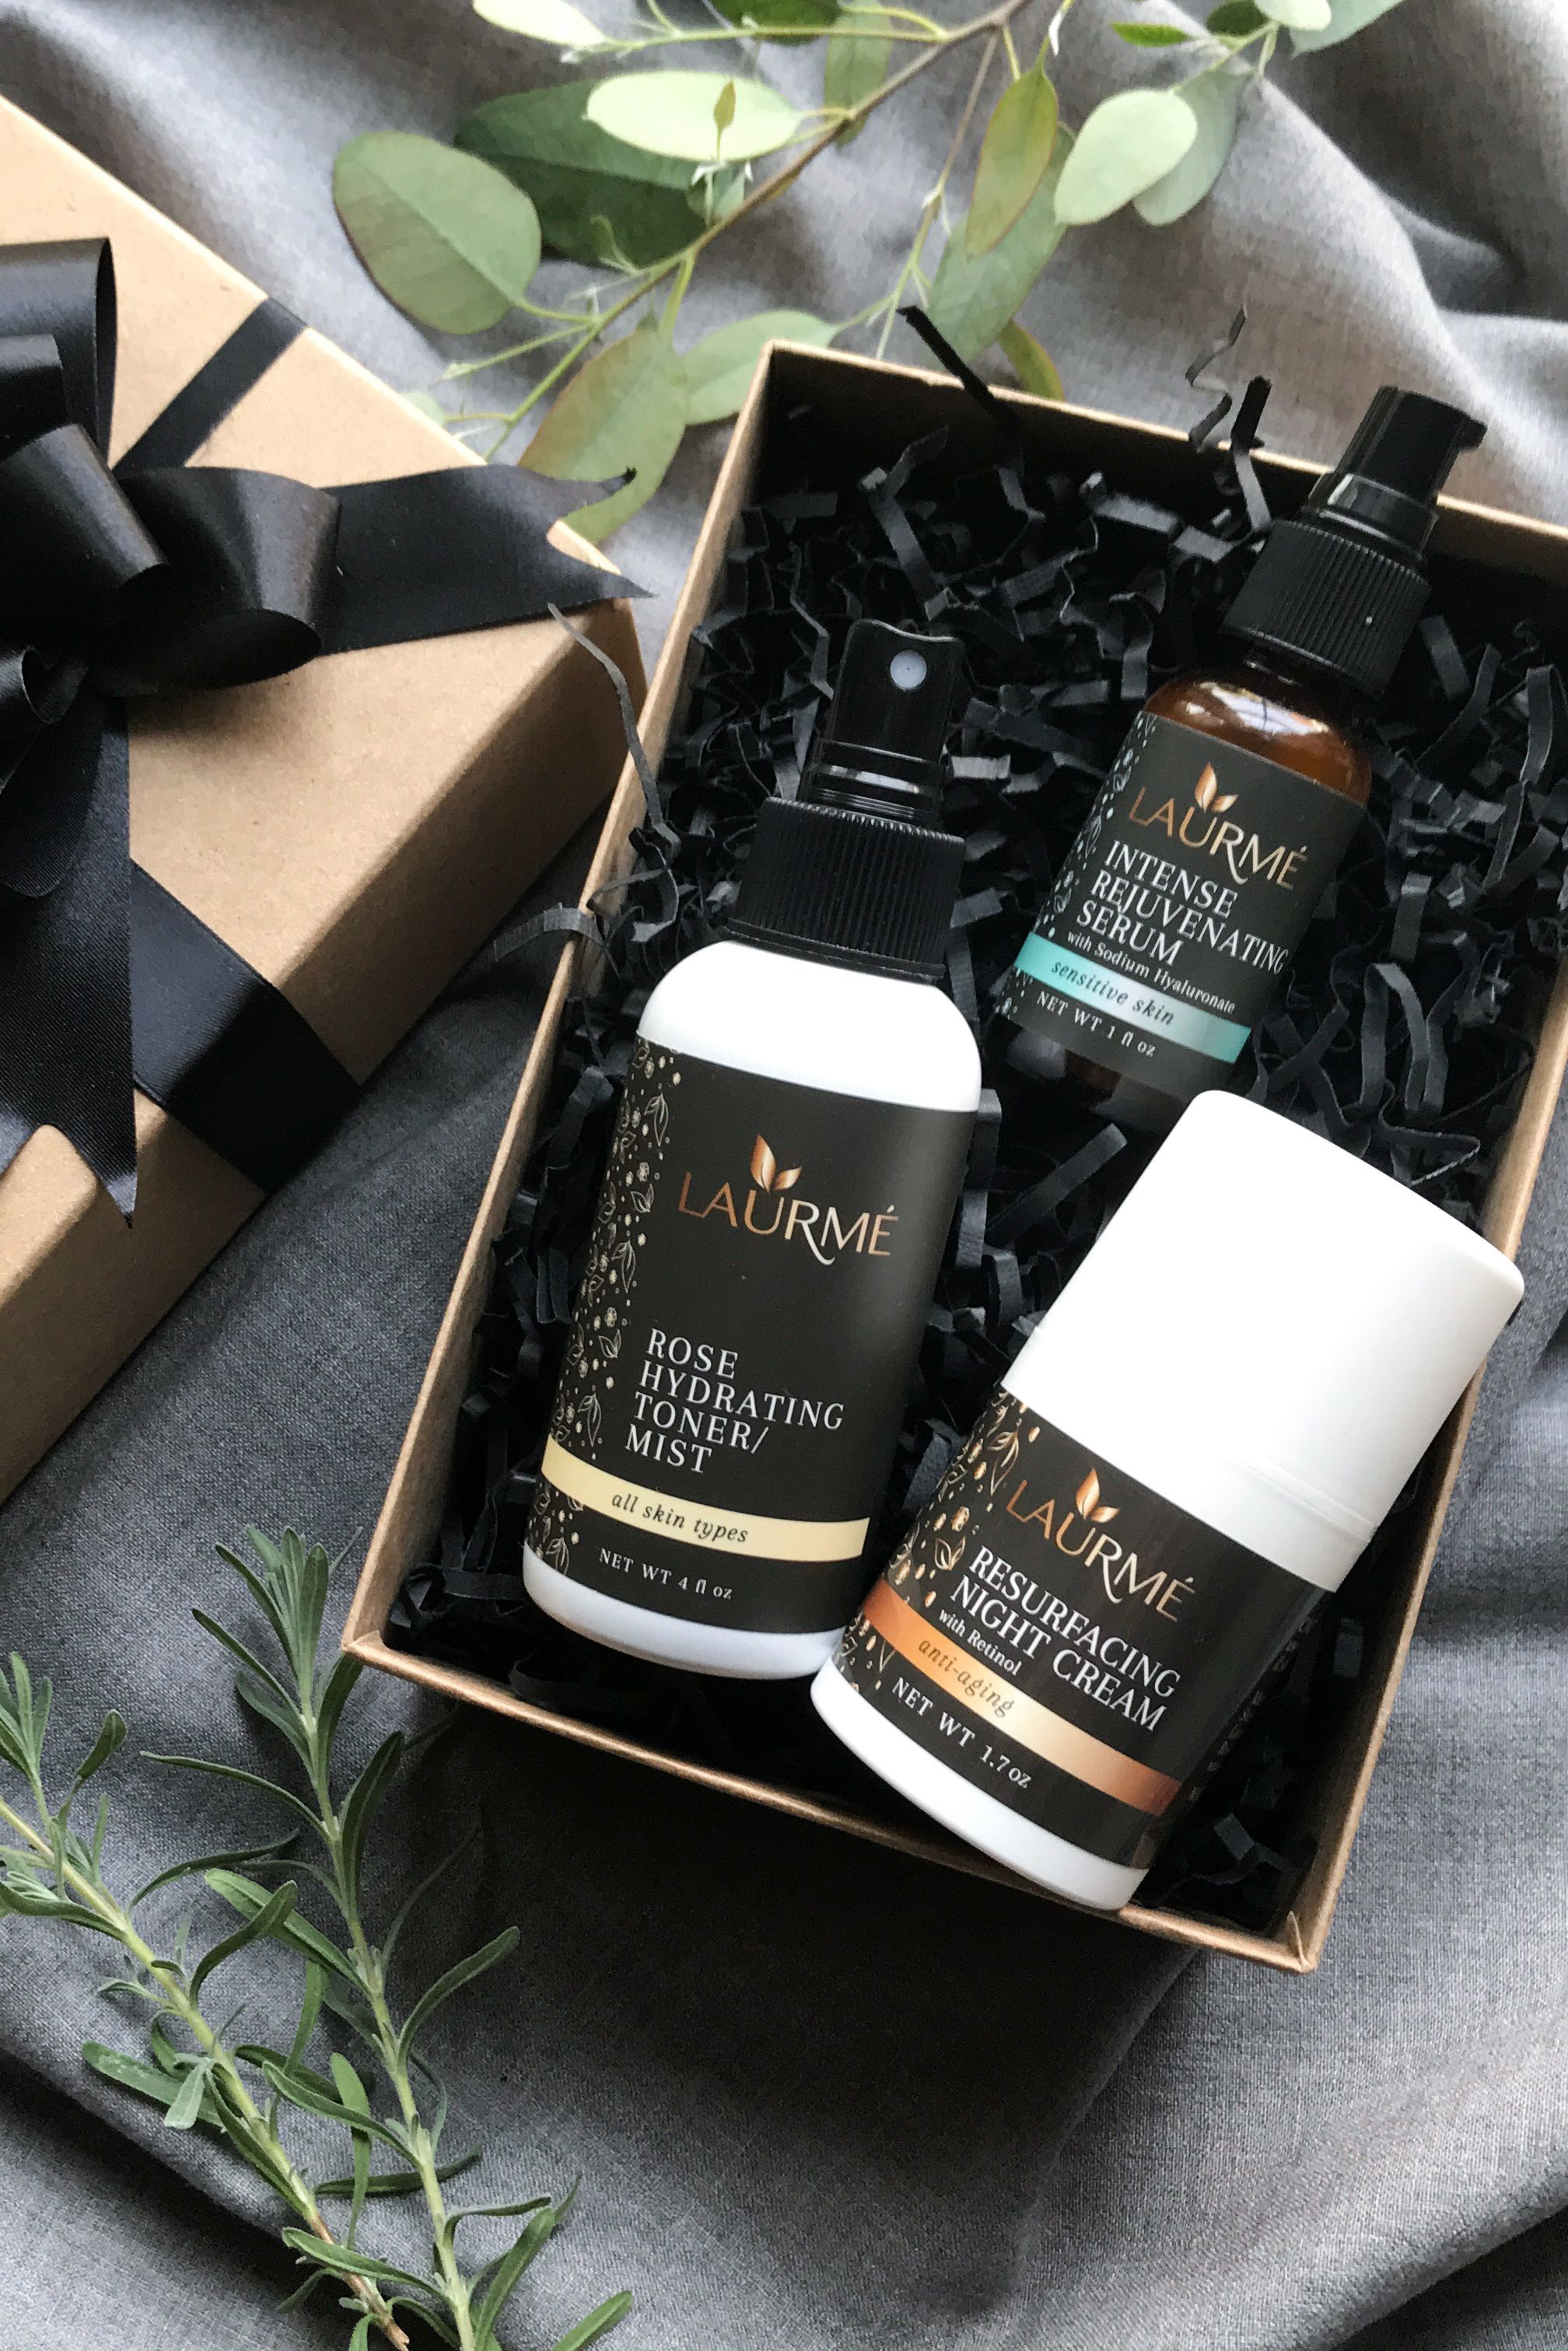 CrueltyFree Gift Sets Laurmé Skin Care (With images